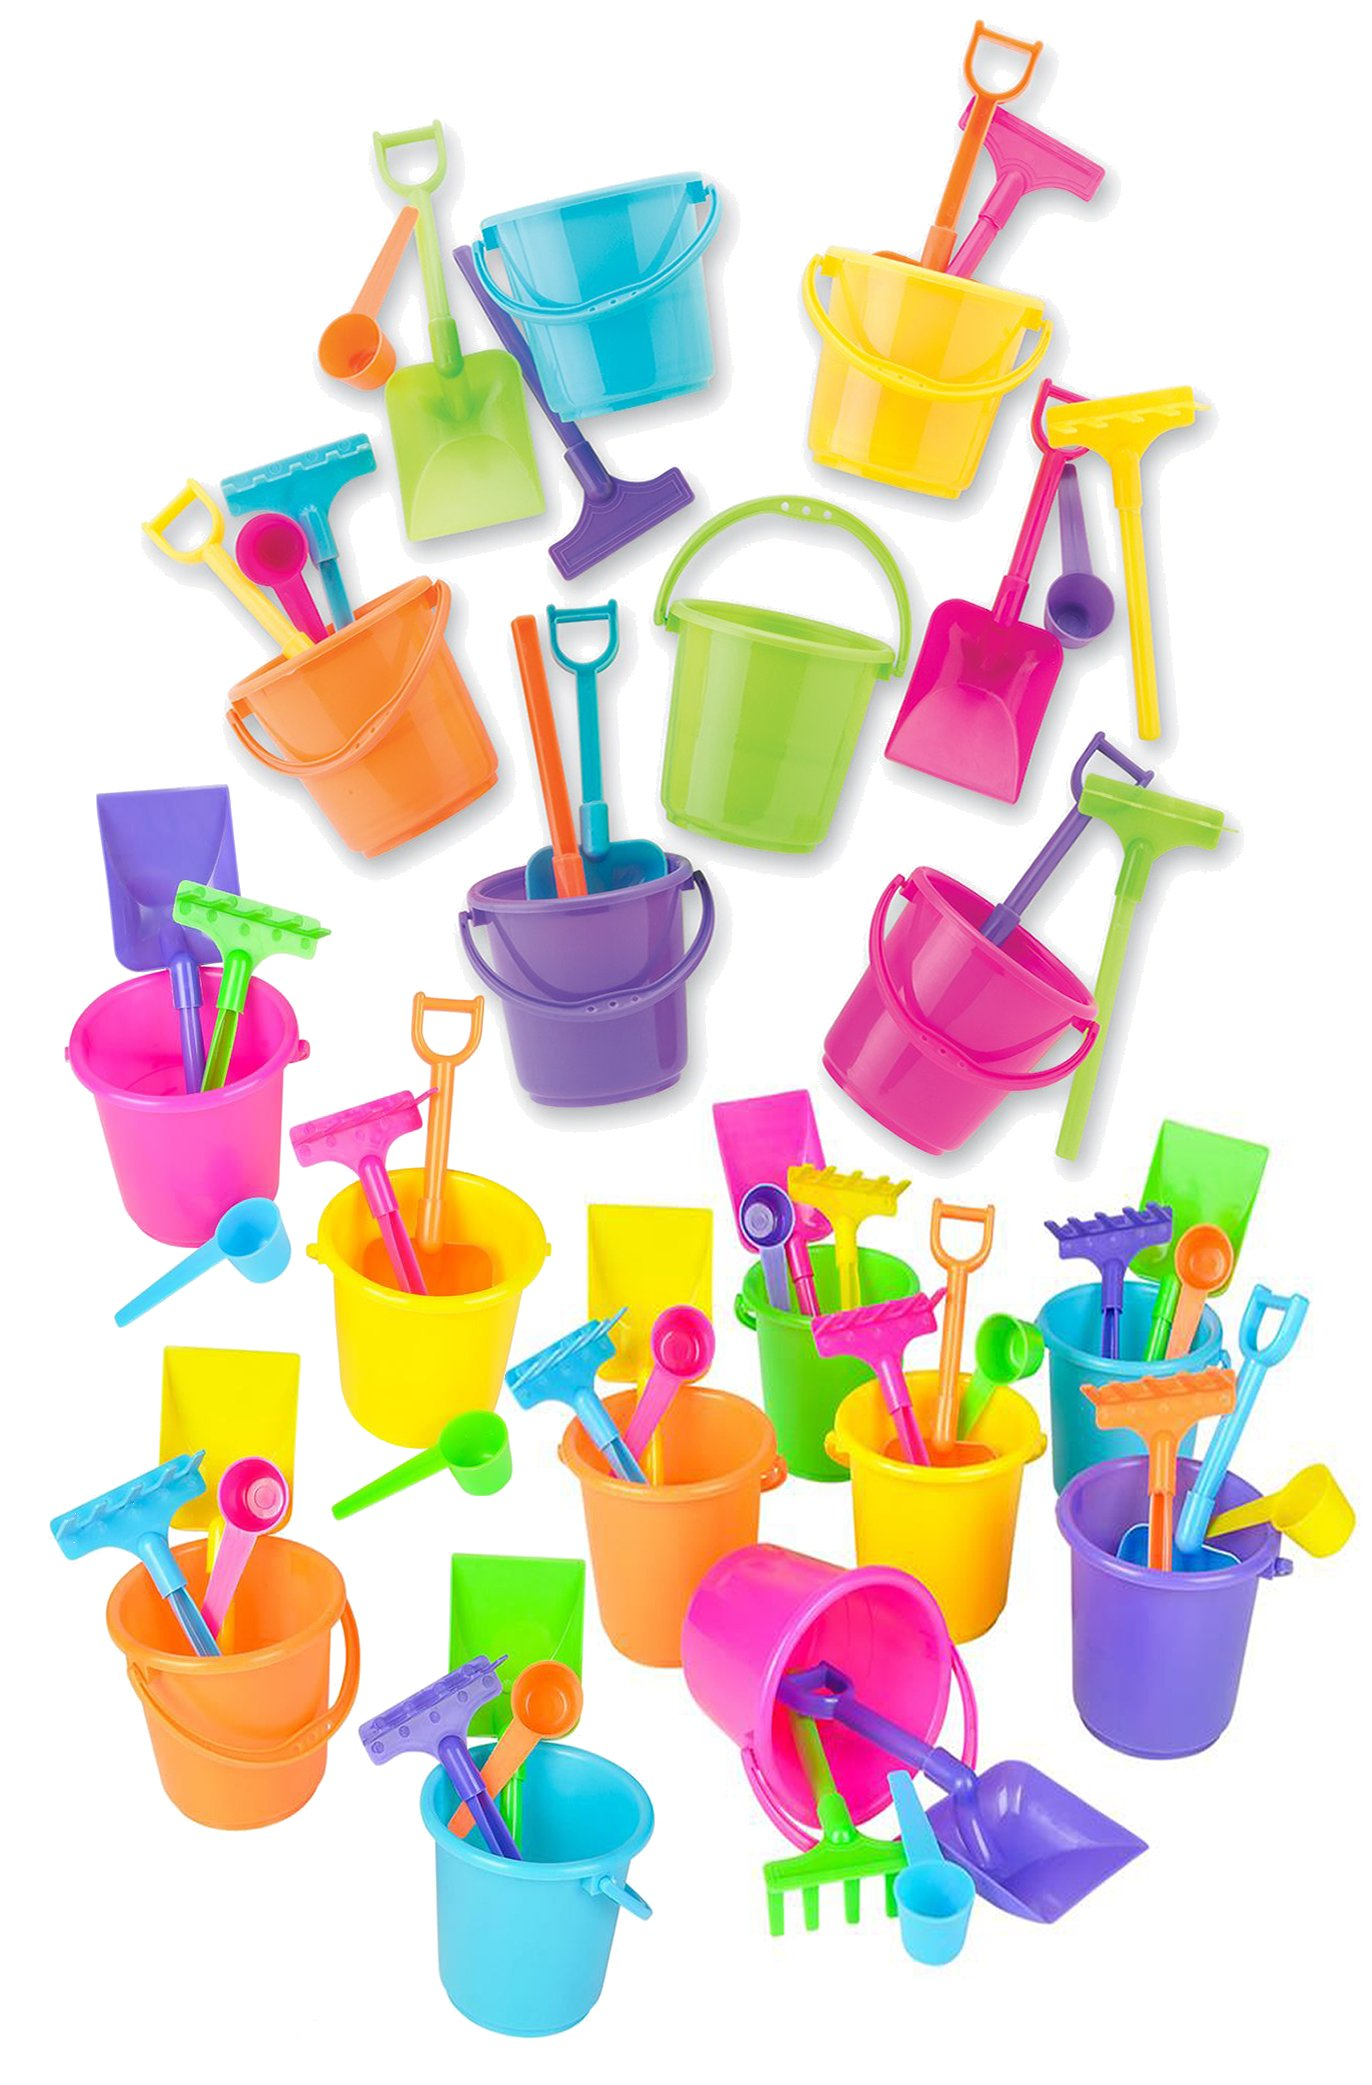 4E's Novelty Beach Sand Toys Set, Pails Buckets Shovels Rakes and Scoops, Assorted Colors, Great for Mermaid or Birthday Theme Beach Toys for Kids Boys Girls